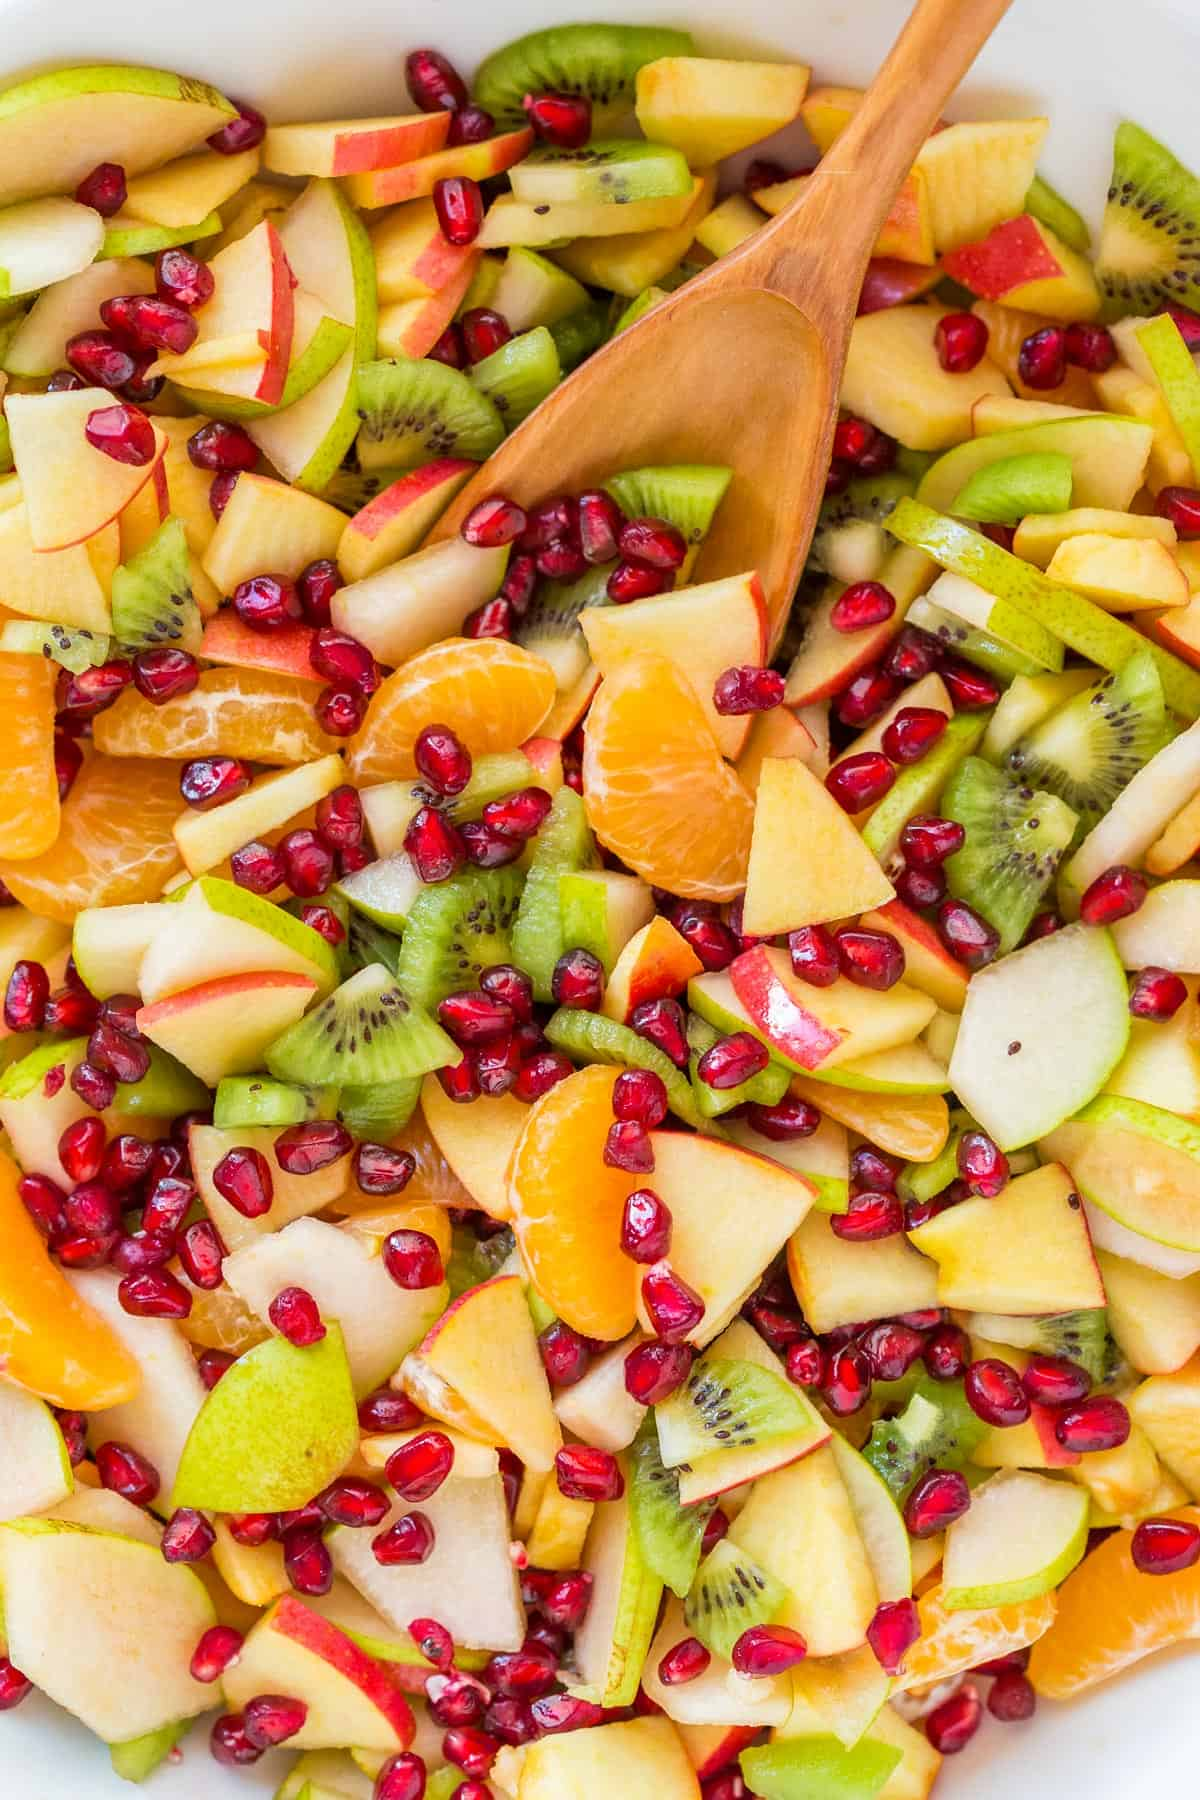 How to Make a Winter Fruit Salad